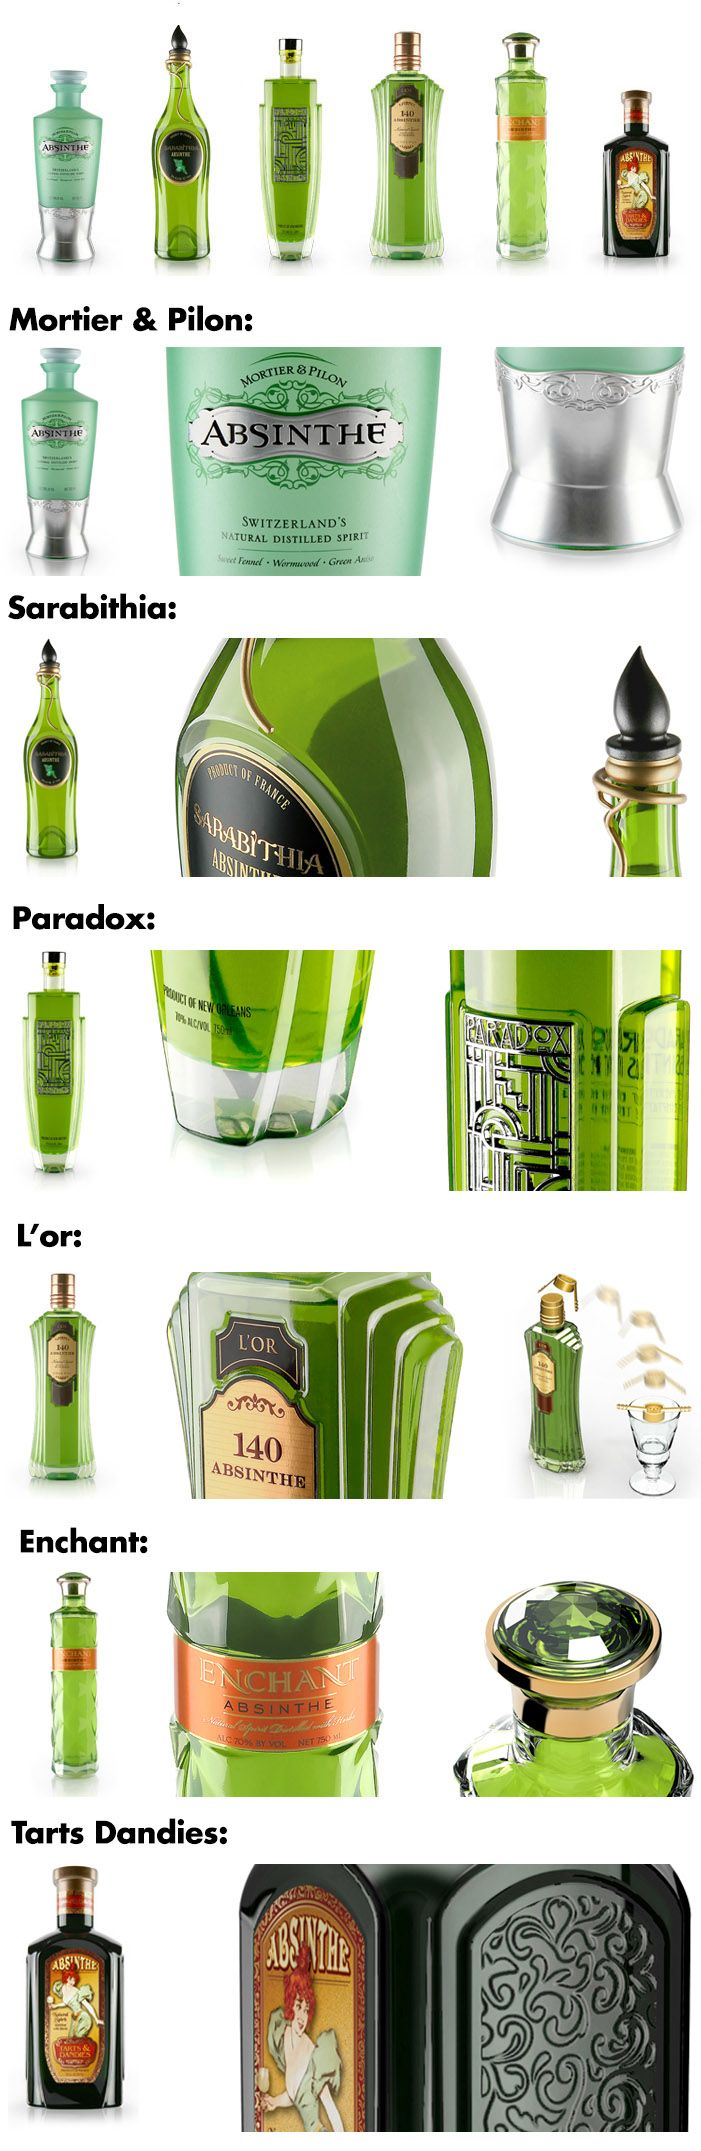 6 different bottle designs as a case study for Absinthe by brand strategy and design consutancy Product Ventures